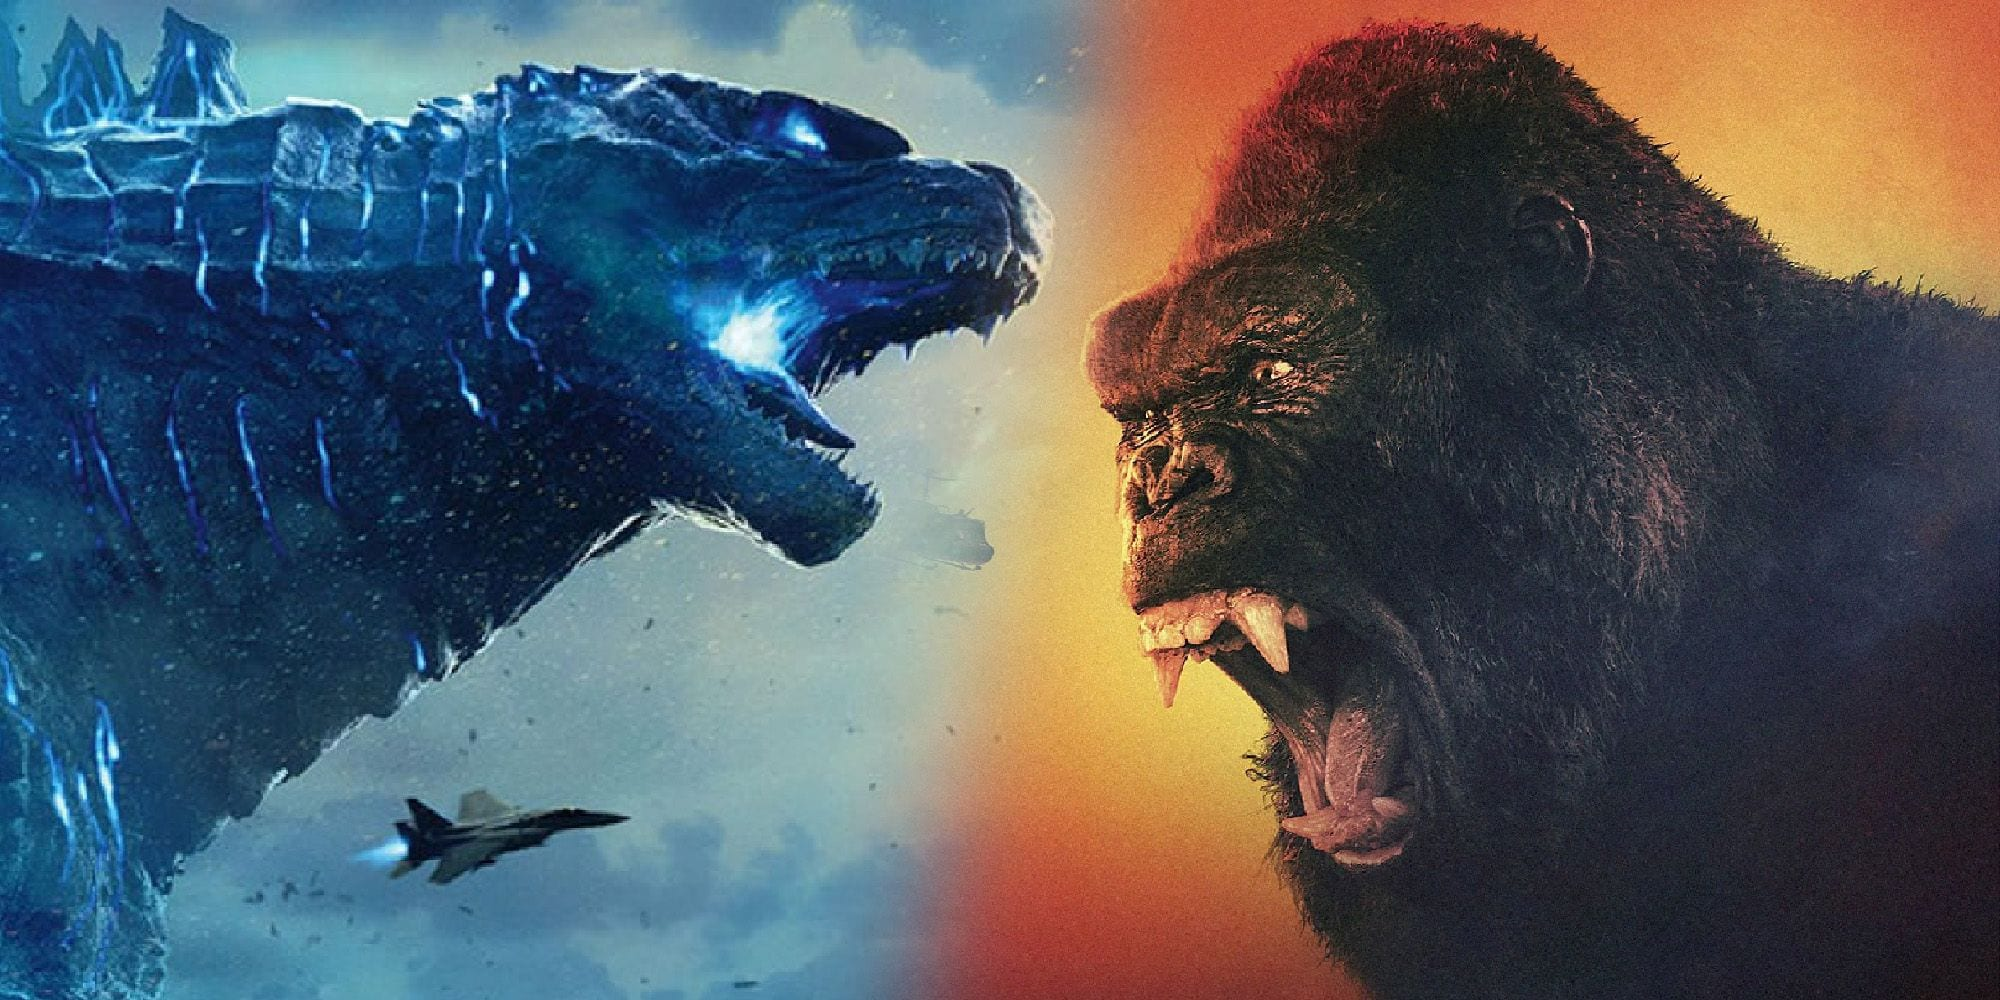 Godzilla vs Kong: rivelato il trailer ufficiale del monster movie